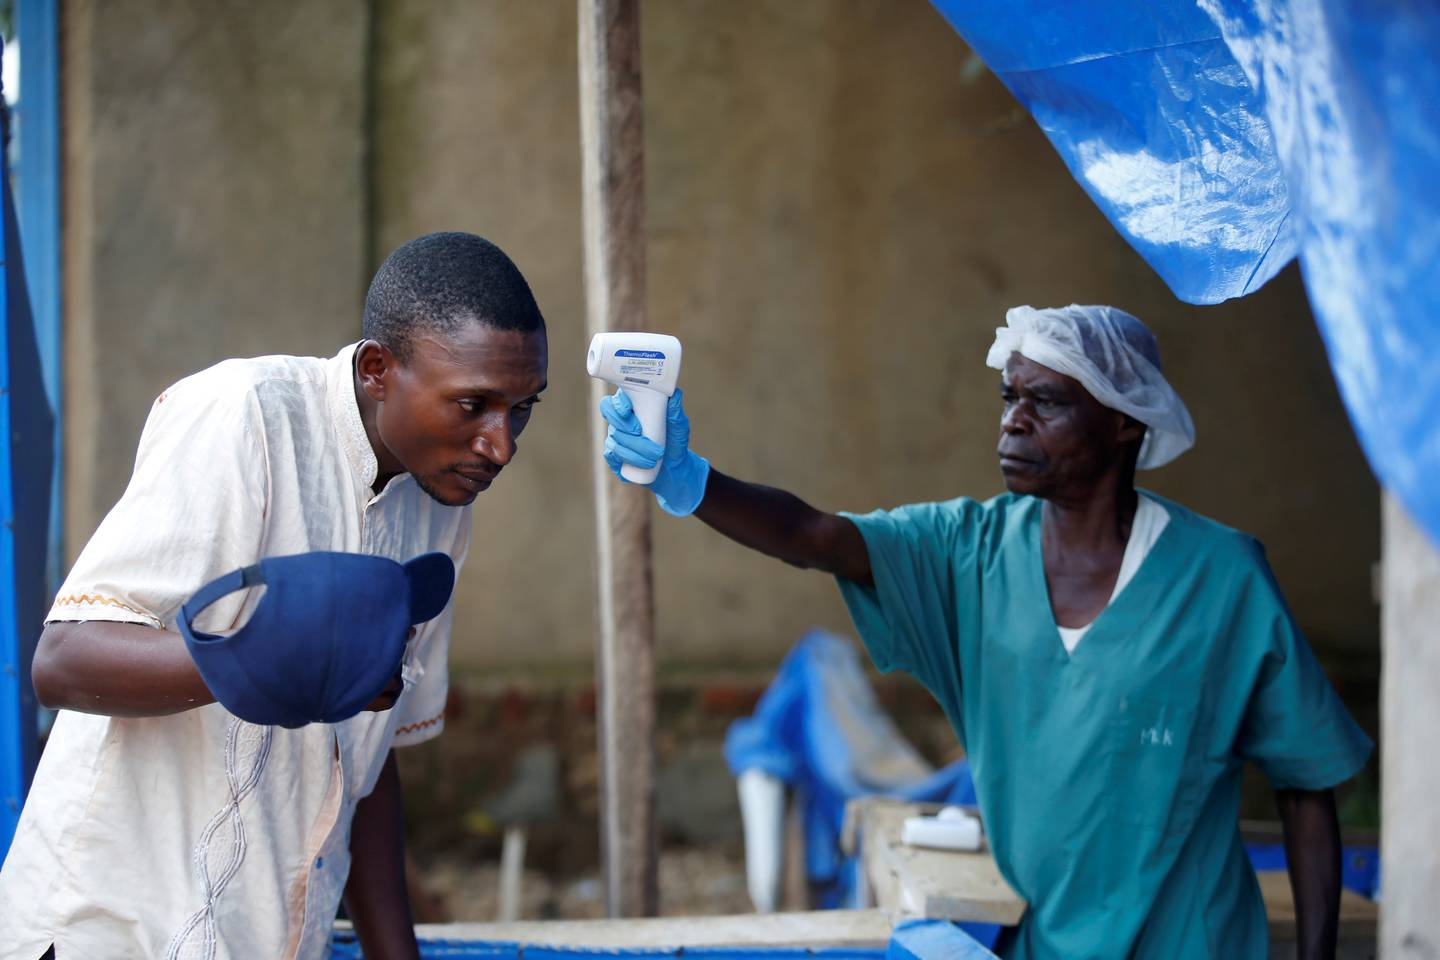 FILE PHOTO: A health worker measures the temperature of a man entering the ALIMA (The Alliance for International Medical Action) Ebola treatment centre in Beni, in the Democratic Republic of Congo, April 1, 2019. Picture taken April 1, 2019. REUTERS/Baz Ratner/File Photo